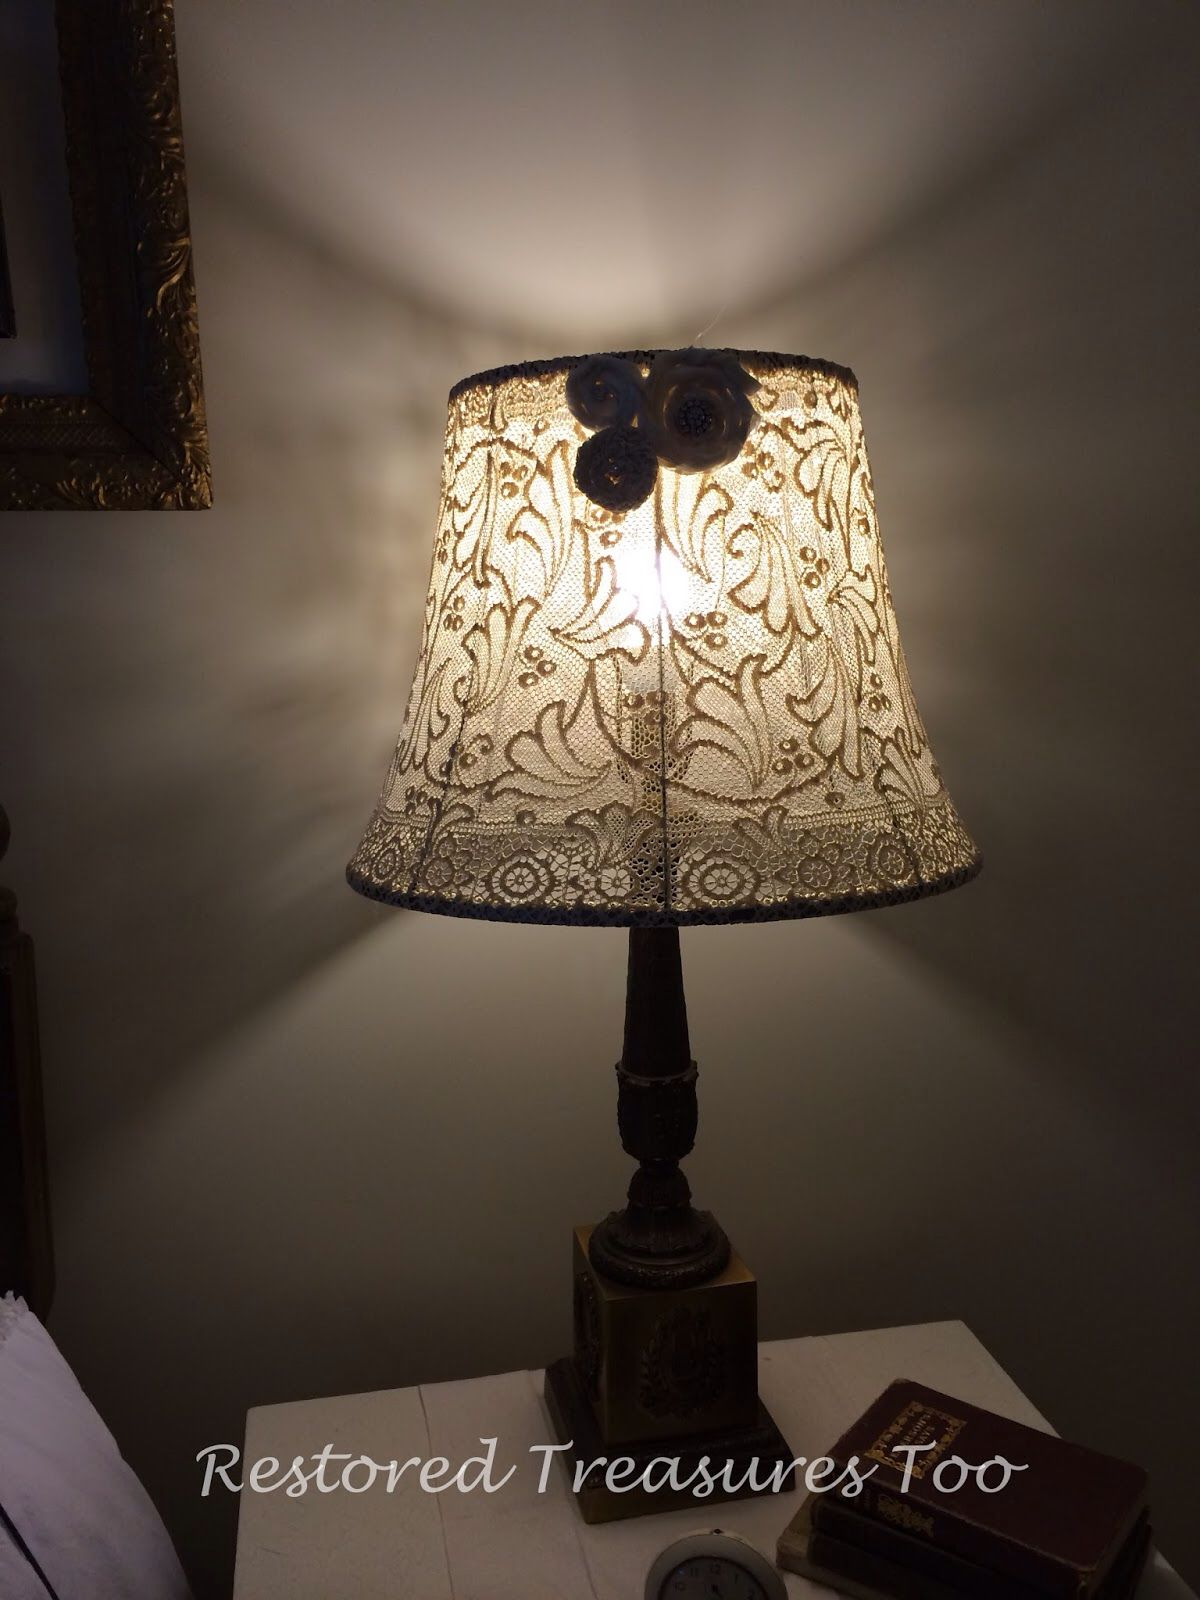 Making A Lampshade Using An Antique Lace Table Cloth Diy Vanity Shade Diy Lamp Shade Antique Lamp Shades Rustic Lamp Shades